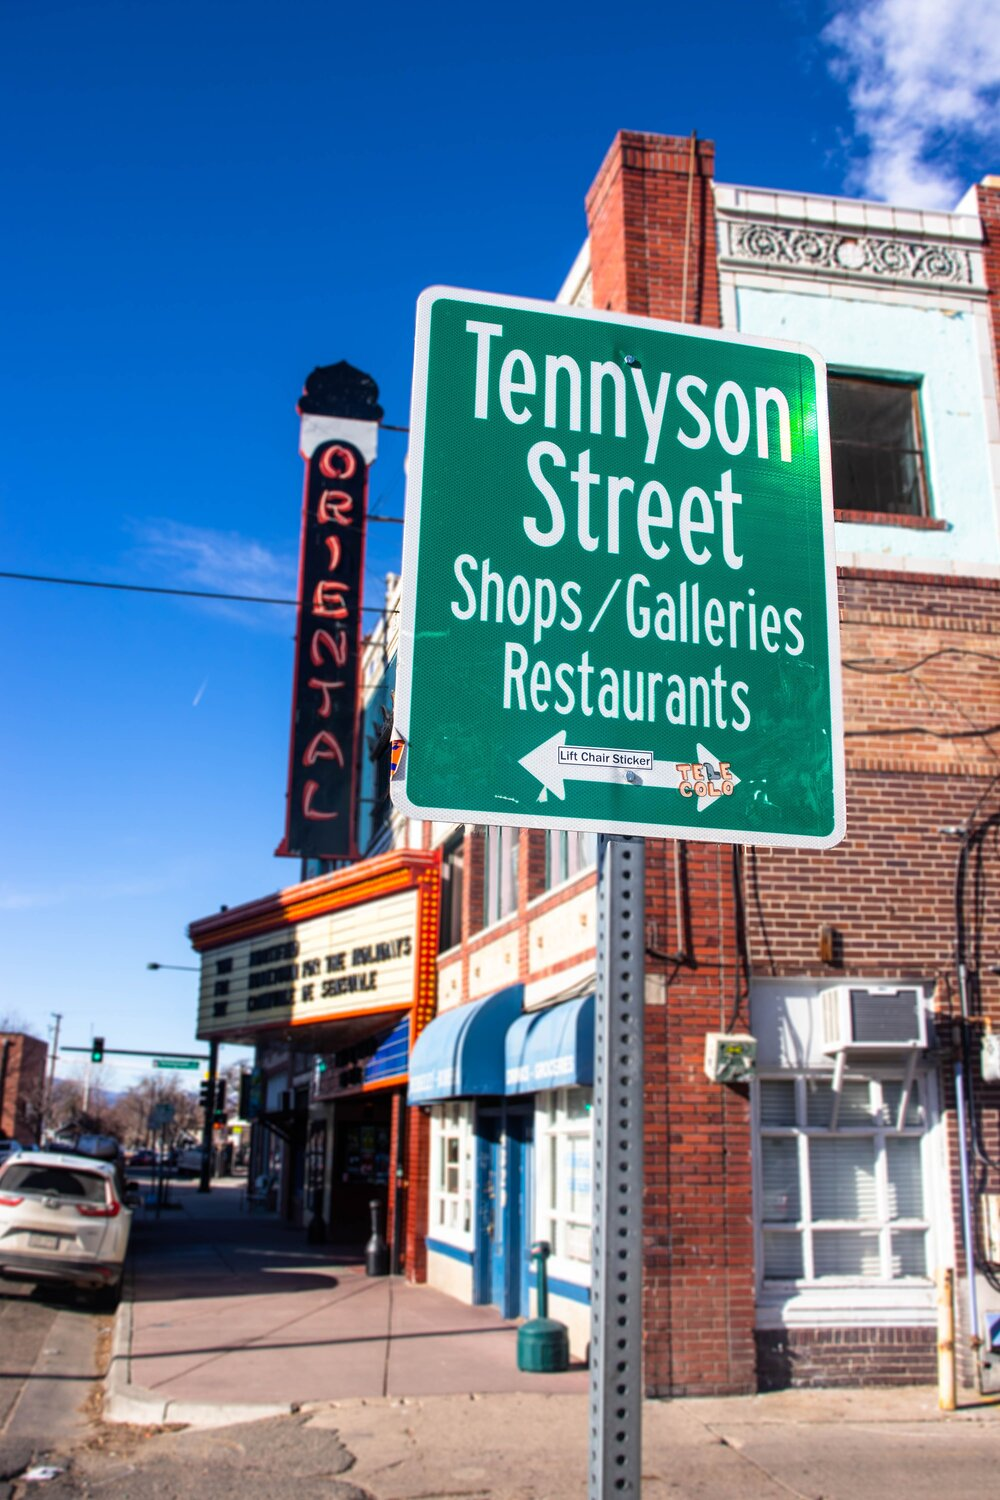 Tennyson Street Shops and Galleries .jpeg